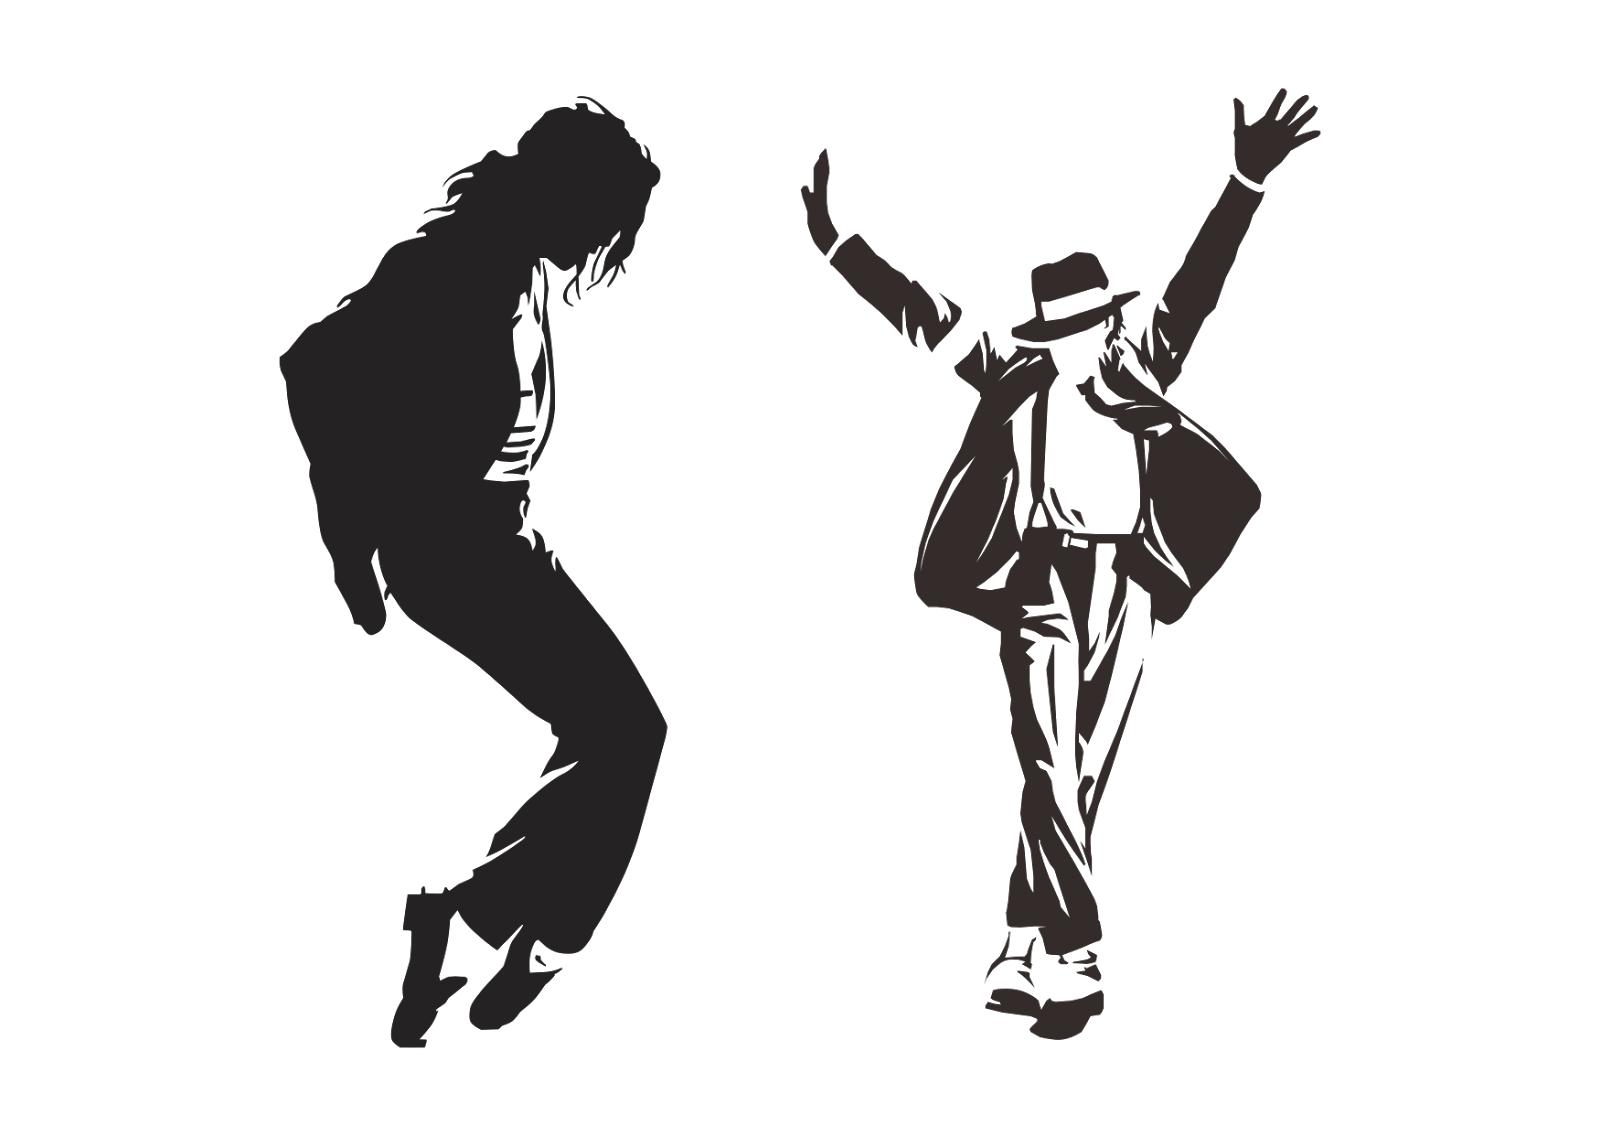 Glove vector michael jackson. Png images free download